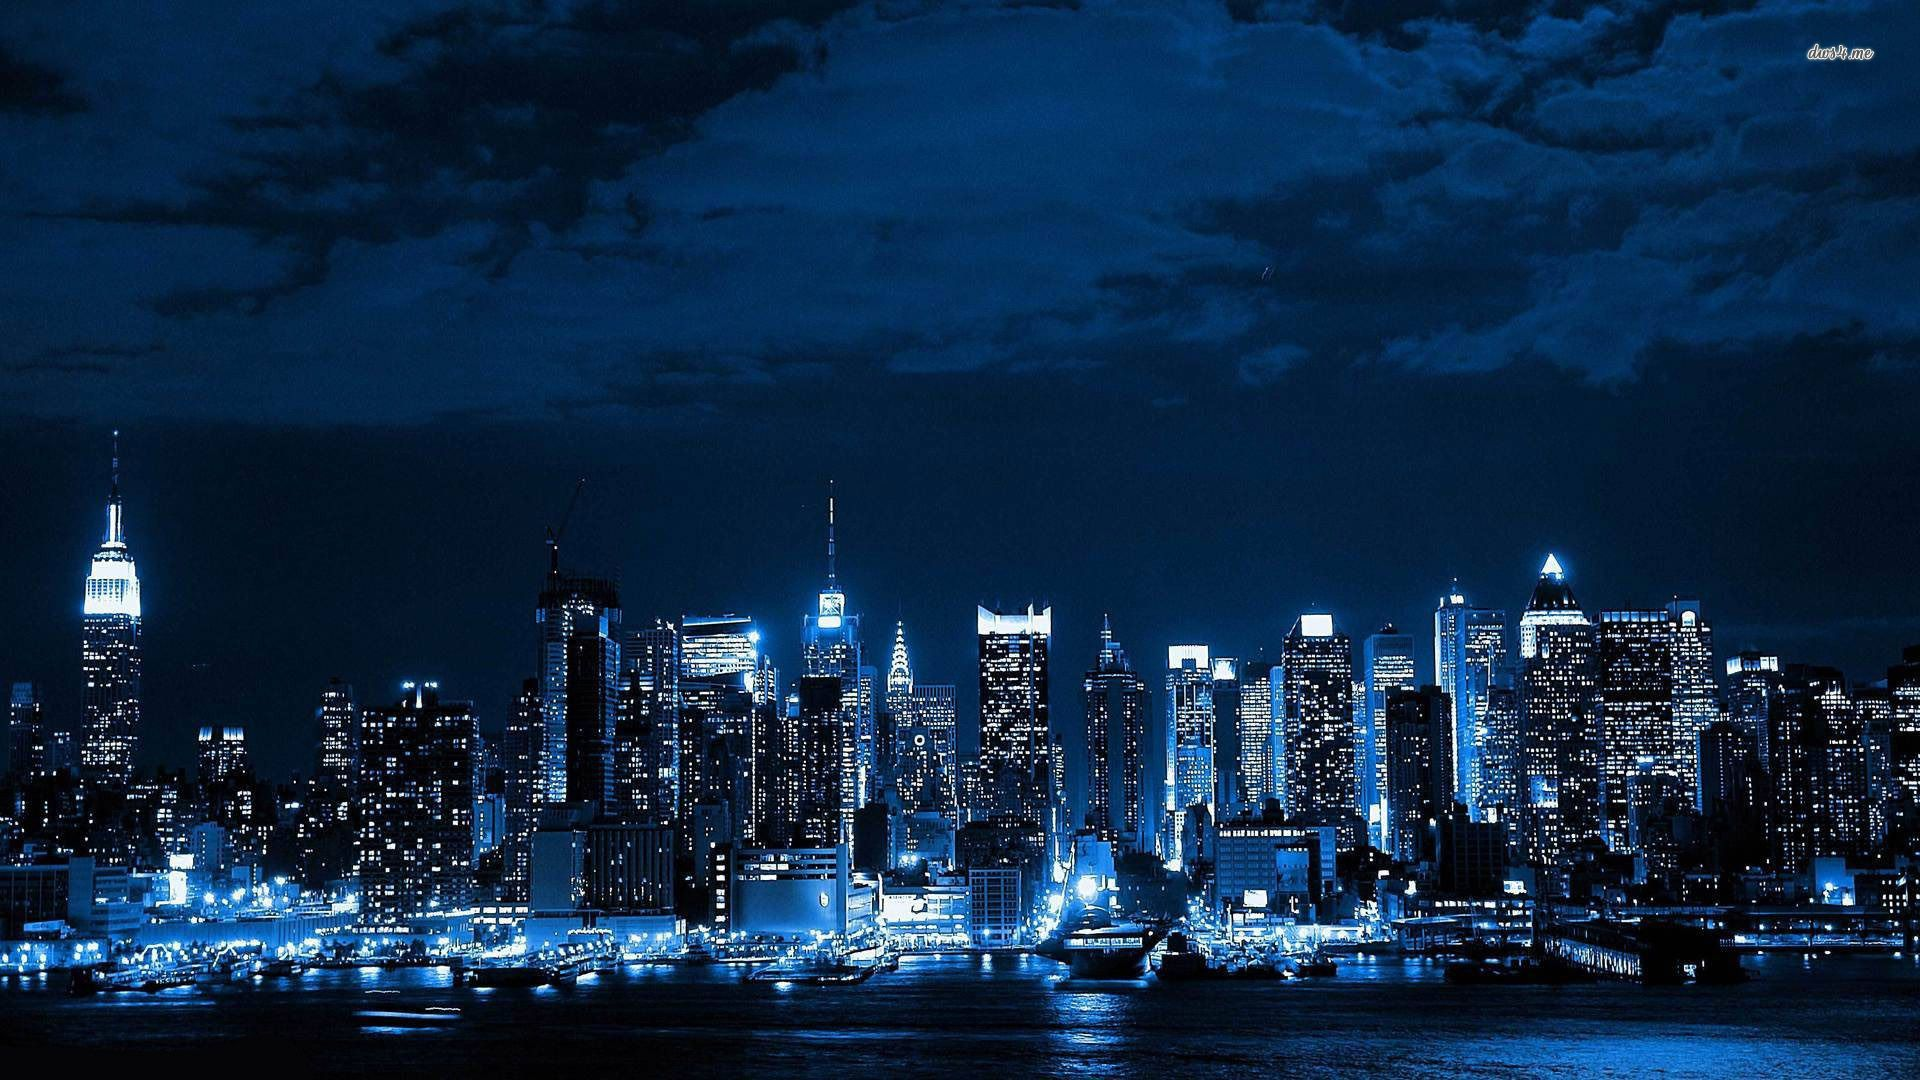 New York City At Night Hd Images Wallpaper Skyline New York